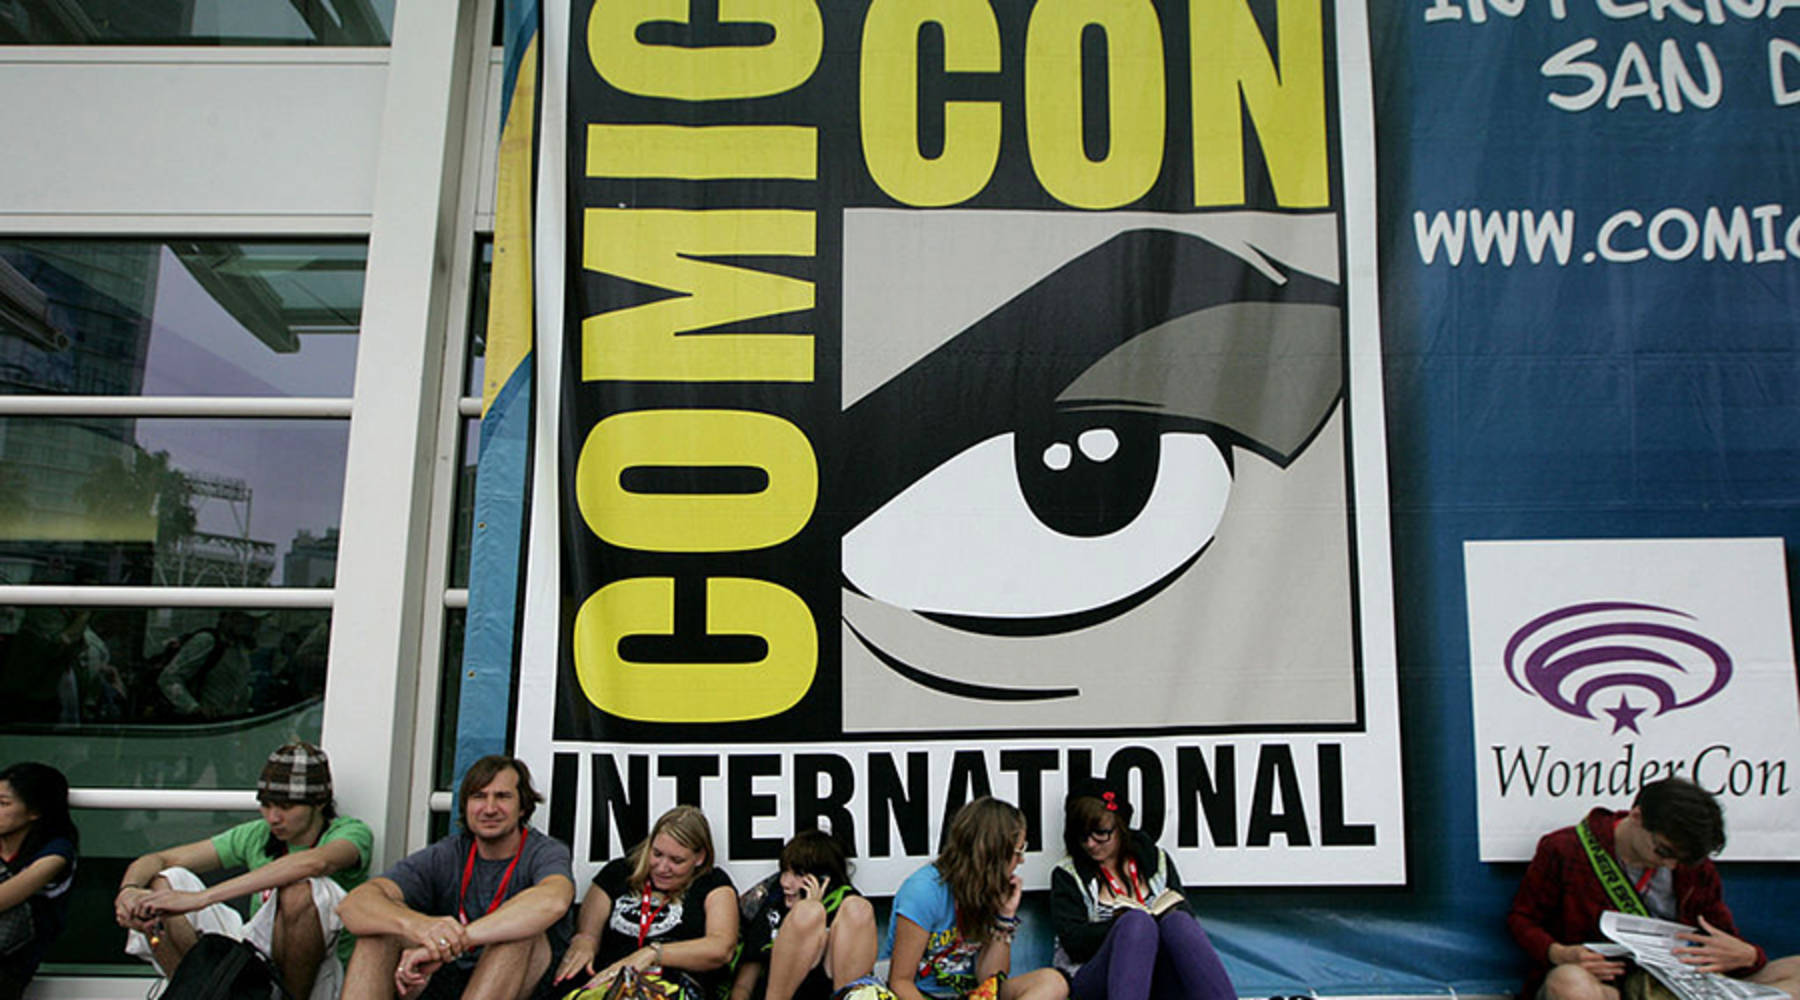 The extraordinary power of Comic-Con and pop culture - Marketplace